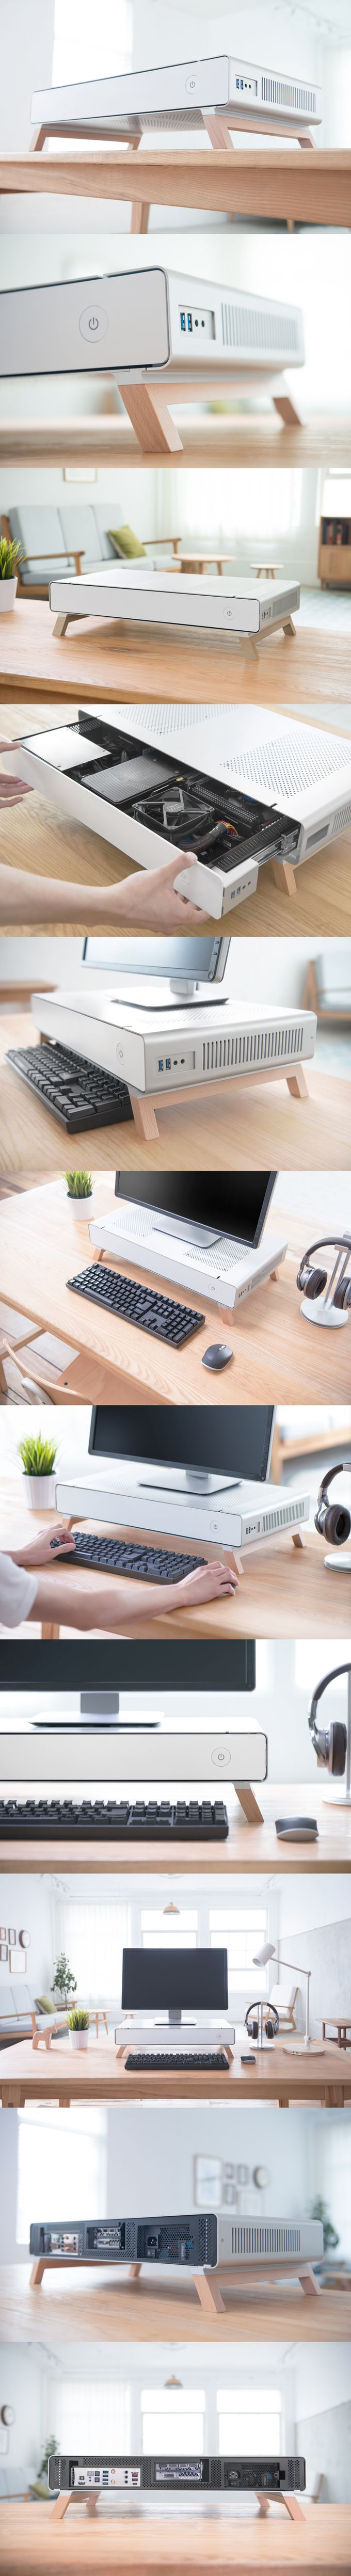 A Monitor Stand PC case, capable of housing a full ITX-PC. Designed by CRYORIG, built by Lian Li.